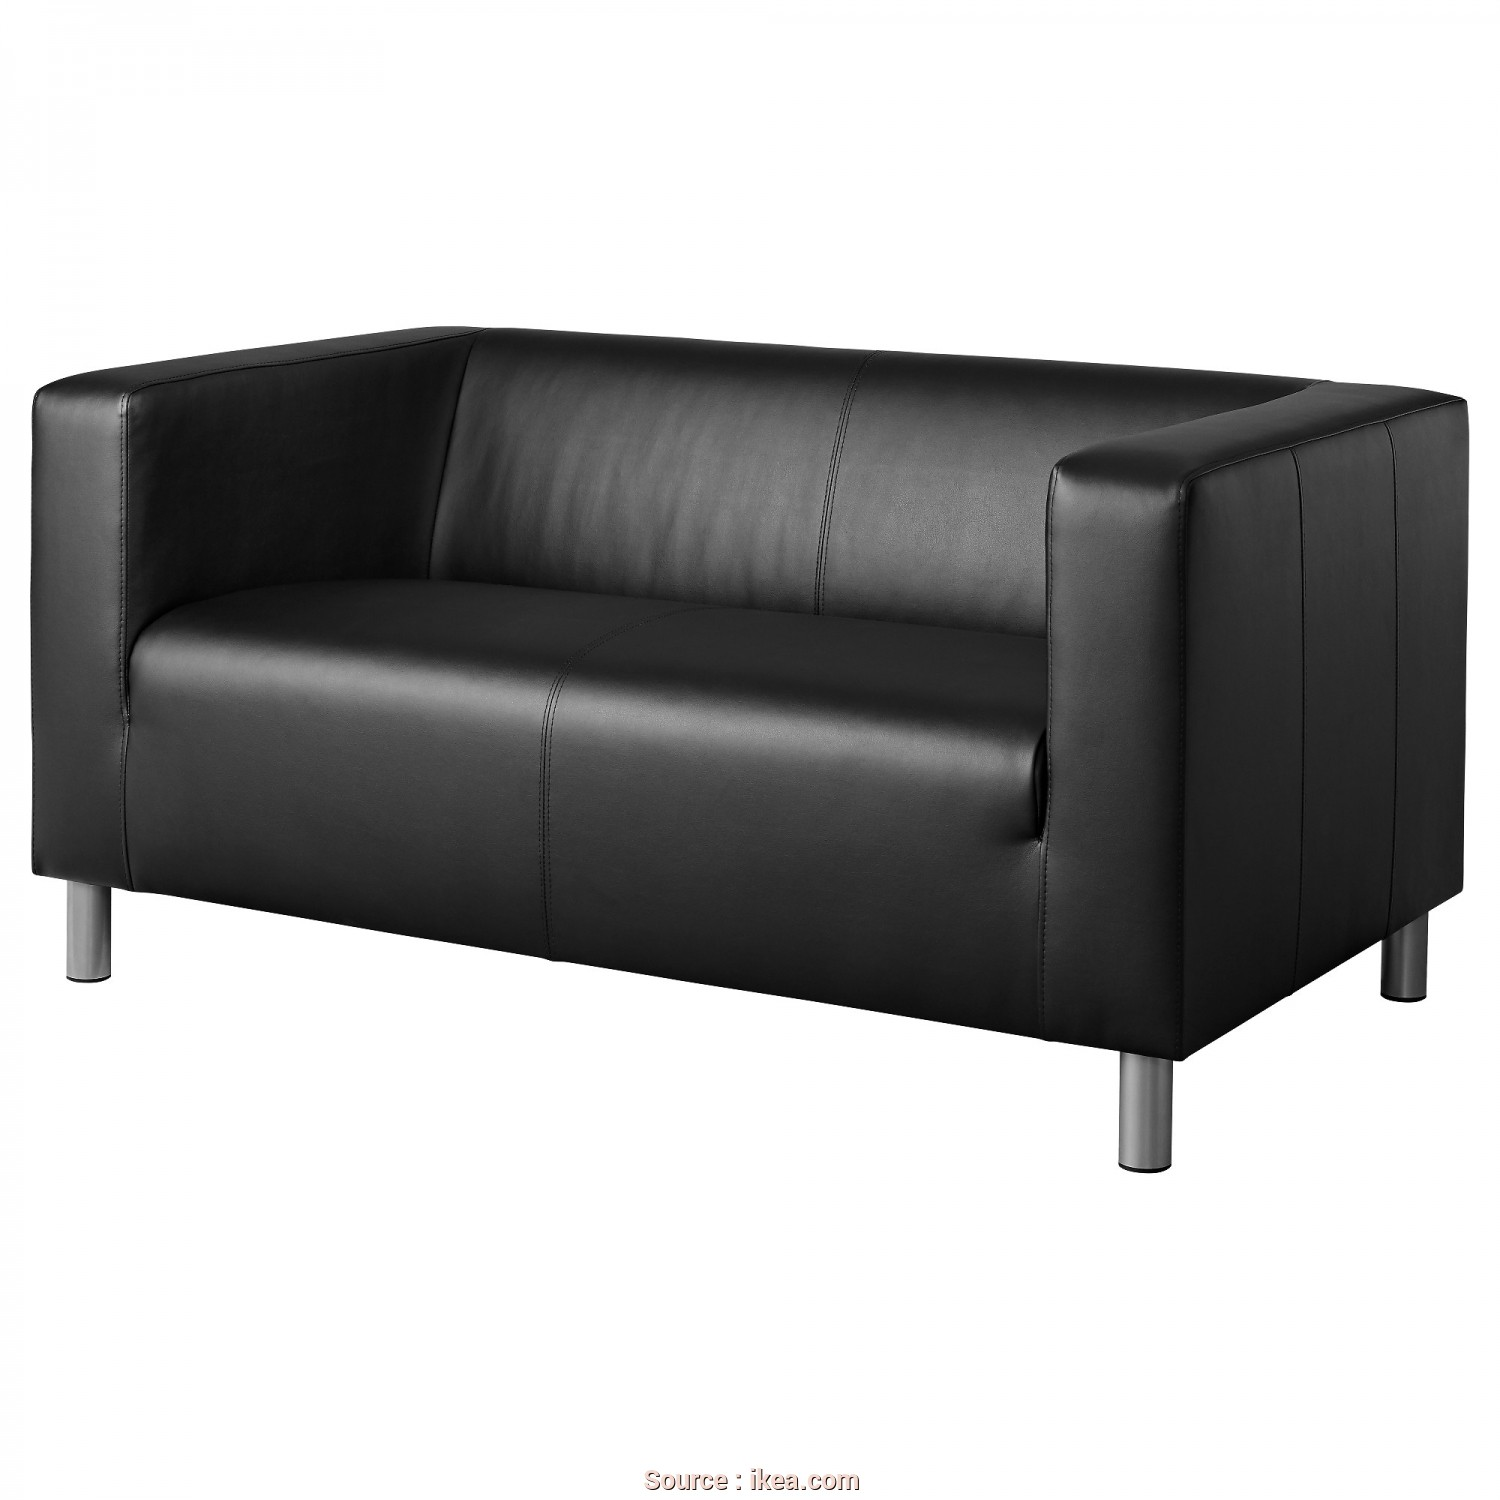 Ikea Klippan Black Leather Sofa, Freddo KLIPPAN Compact 2-Seat Sofa Kimstad Black